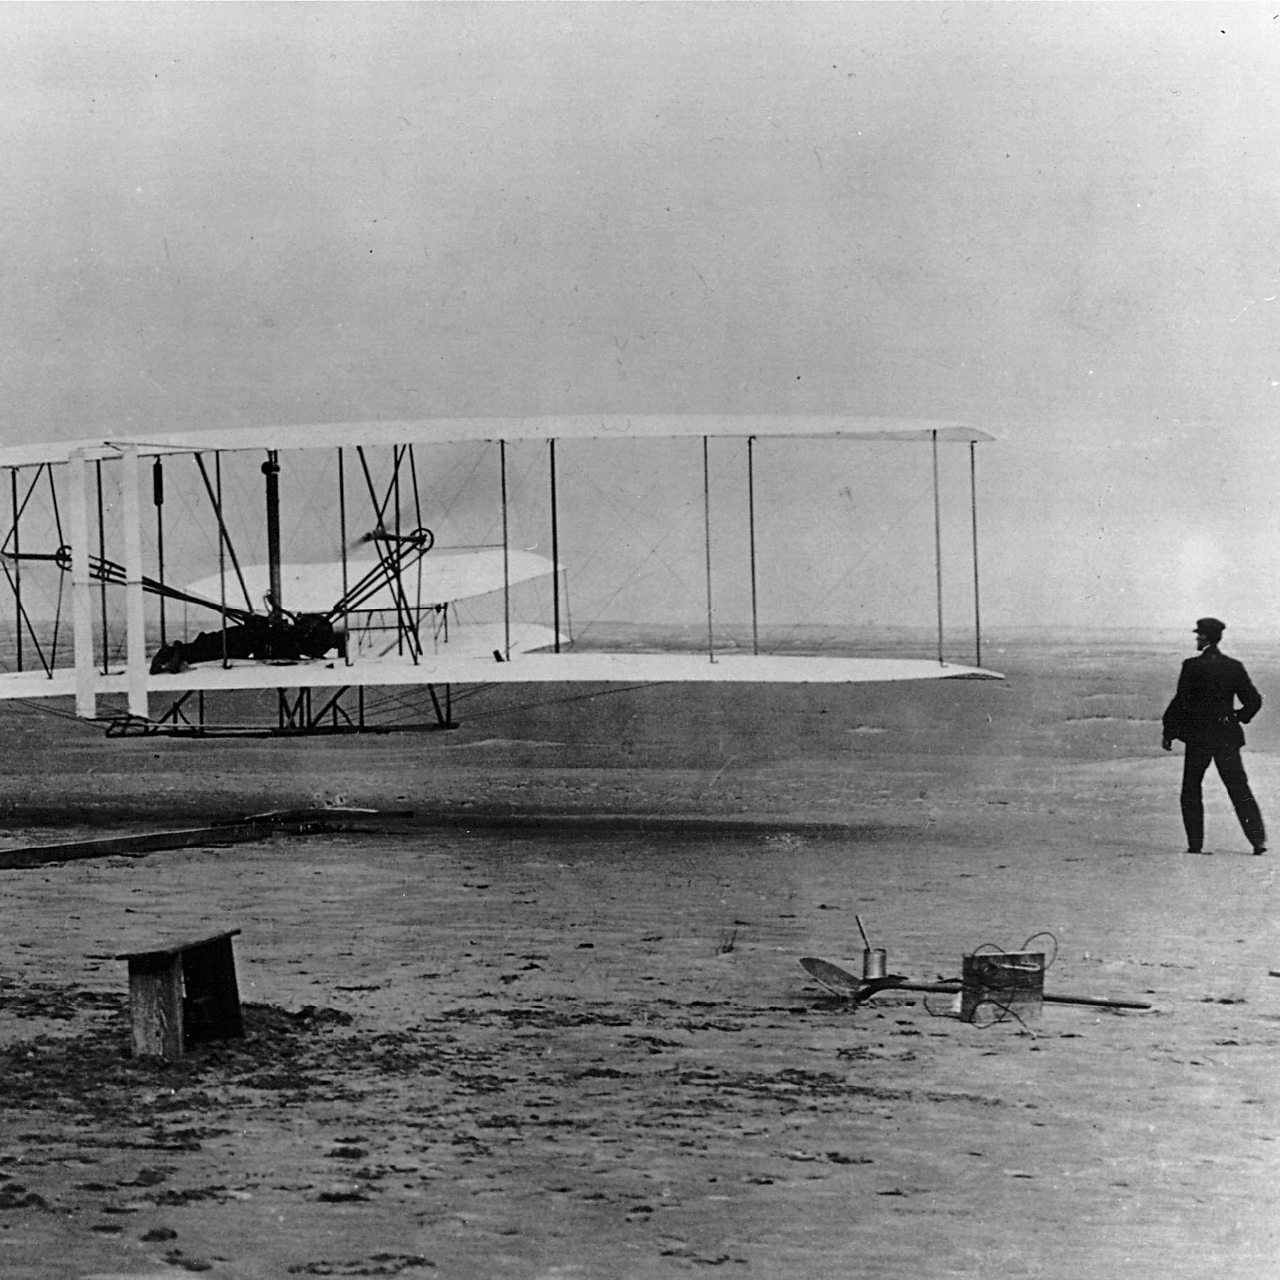 The Wright Flyer taking off